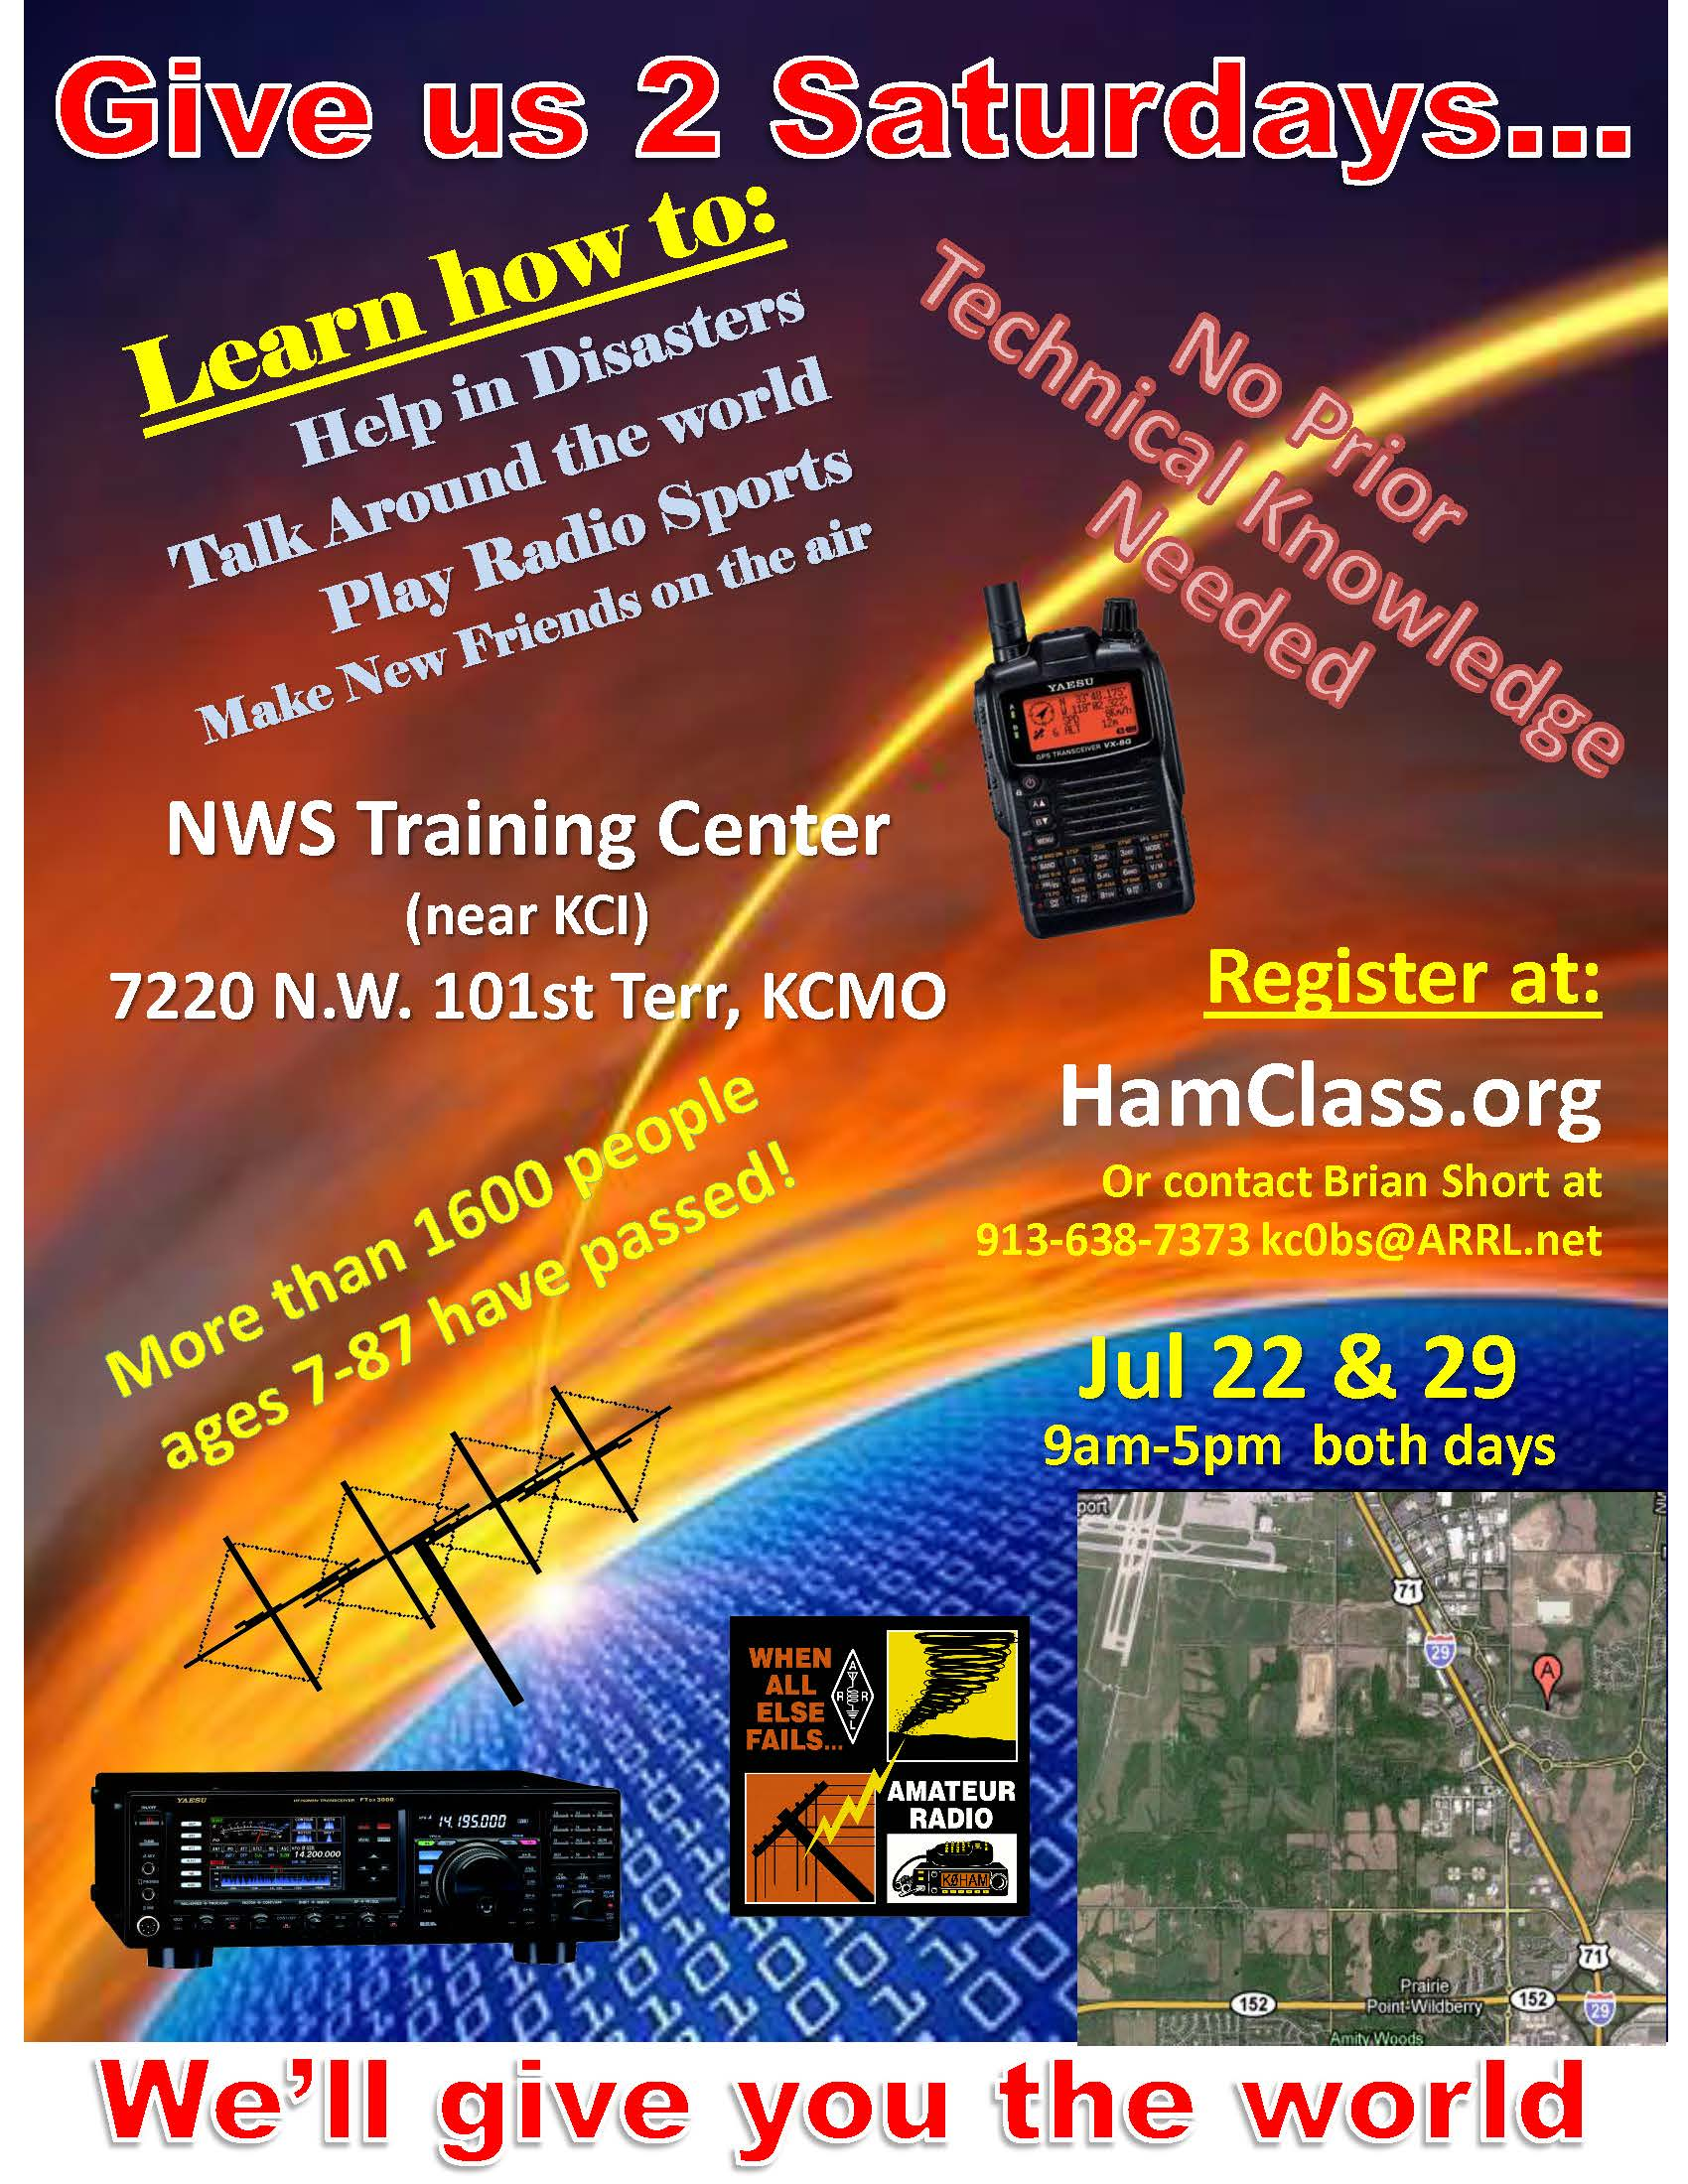 July 22 & 29 at NWS Training Center near KCI